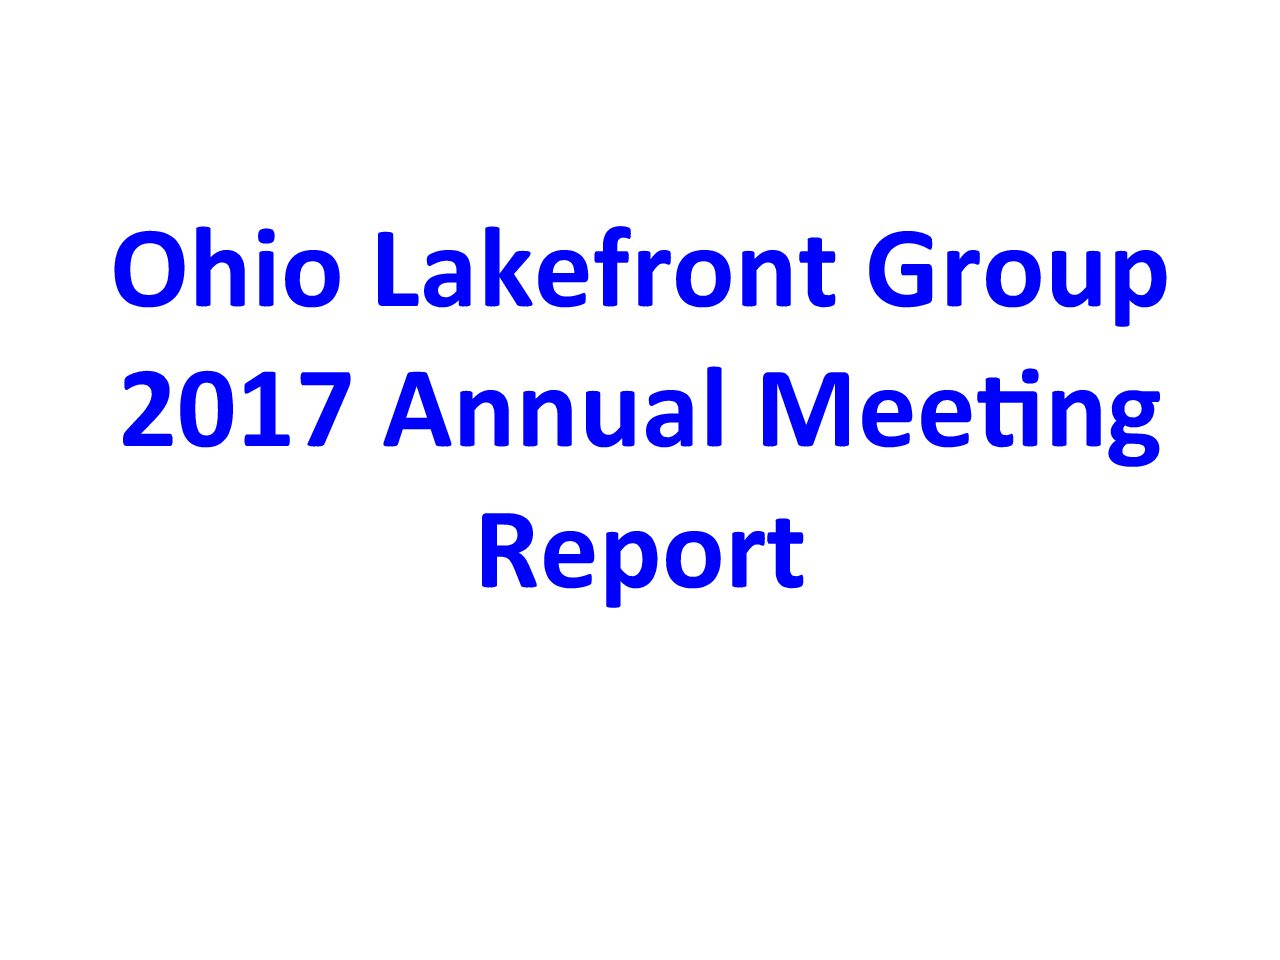 2017 Ohio Lakefront Group Annual Meeting Report